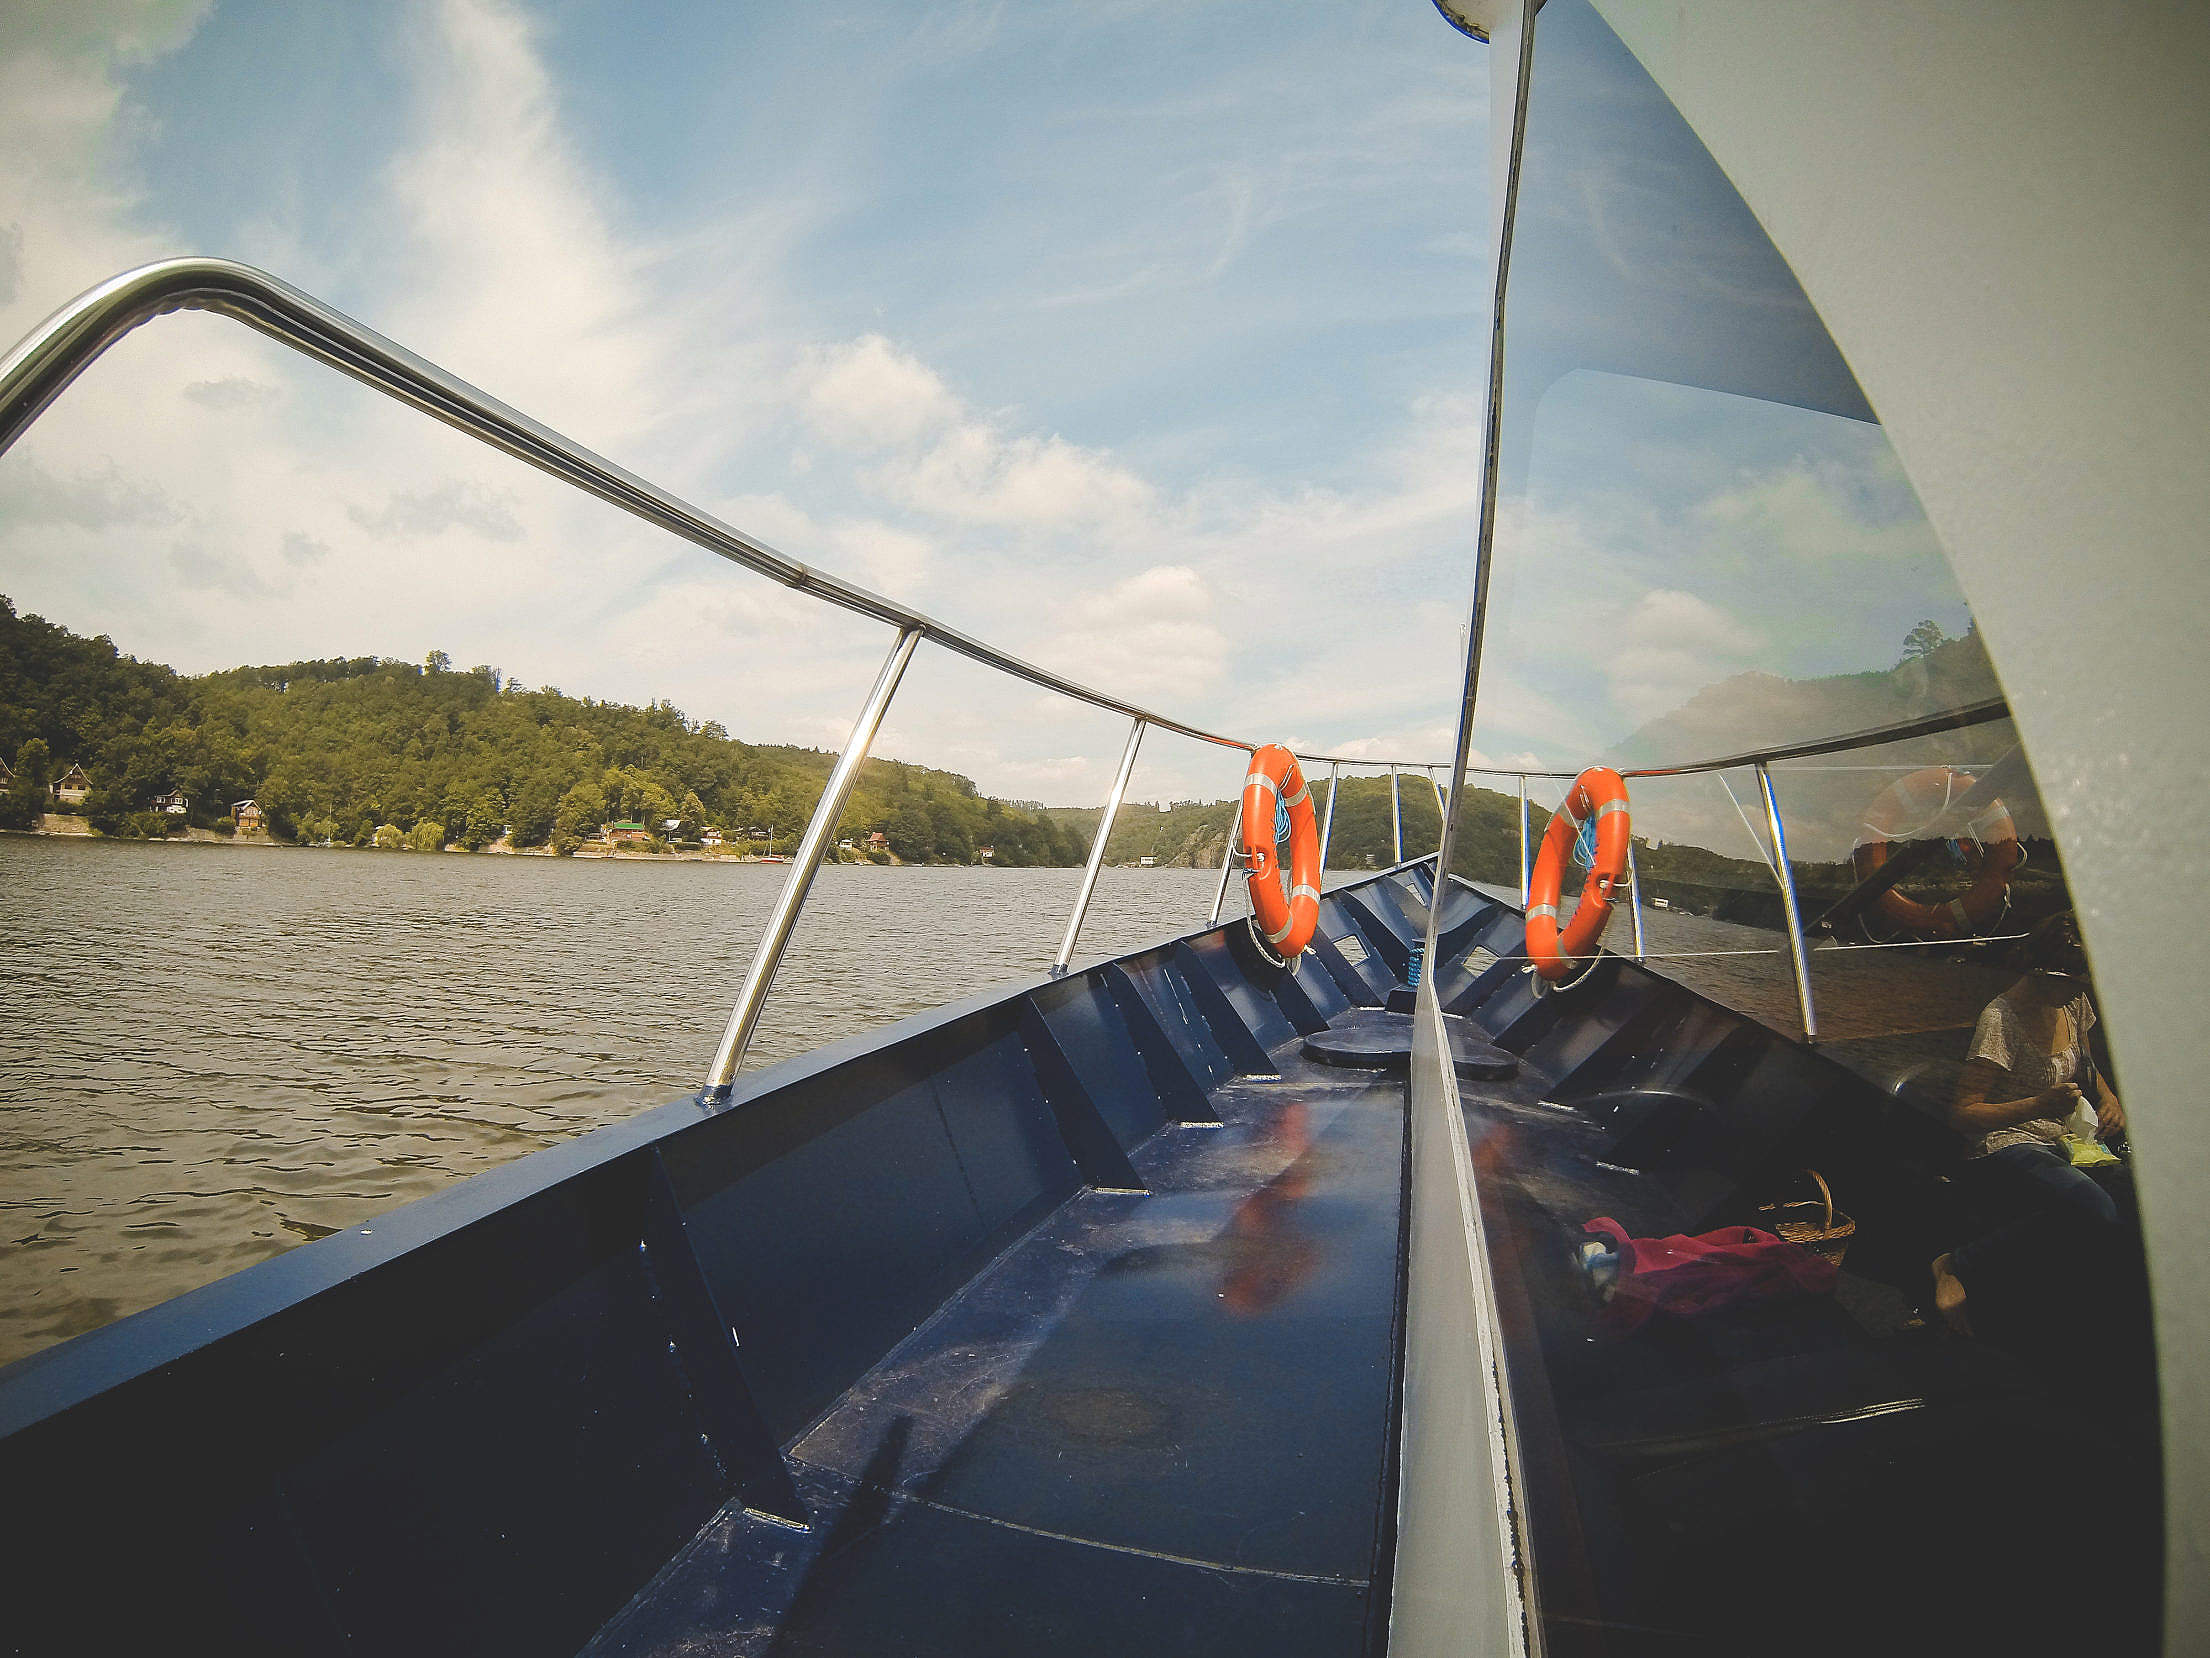 Sailing On The River Free Stock Photo